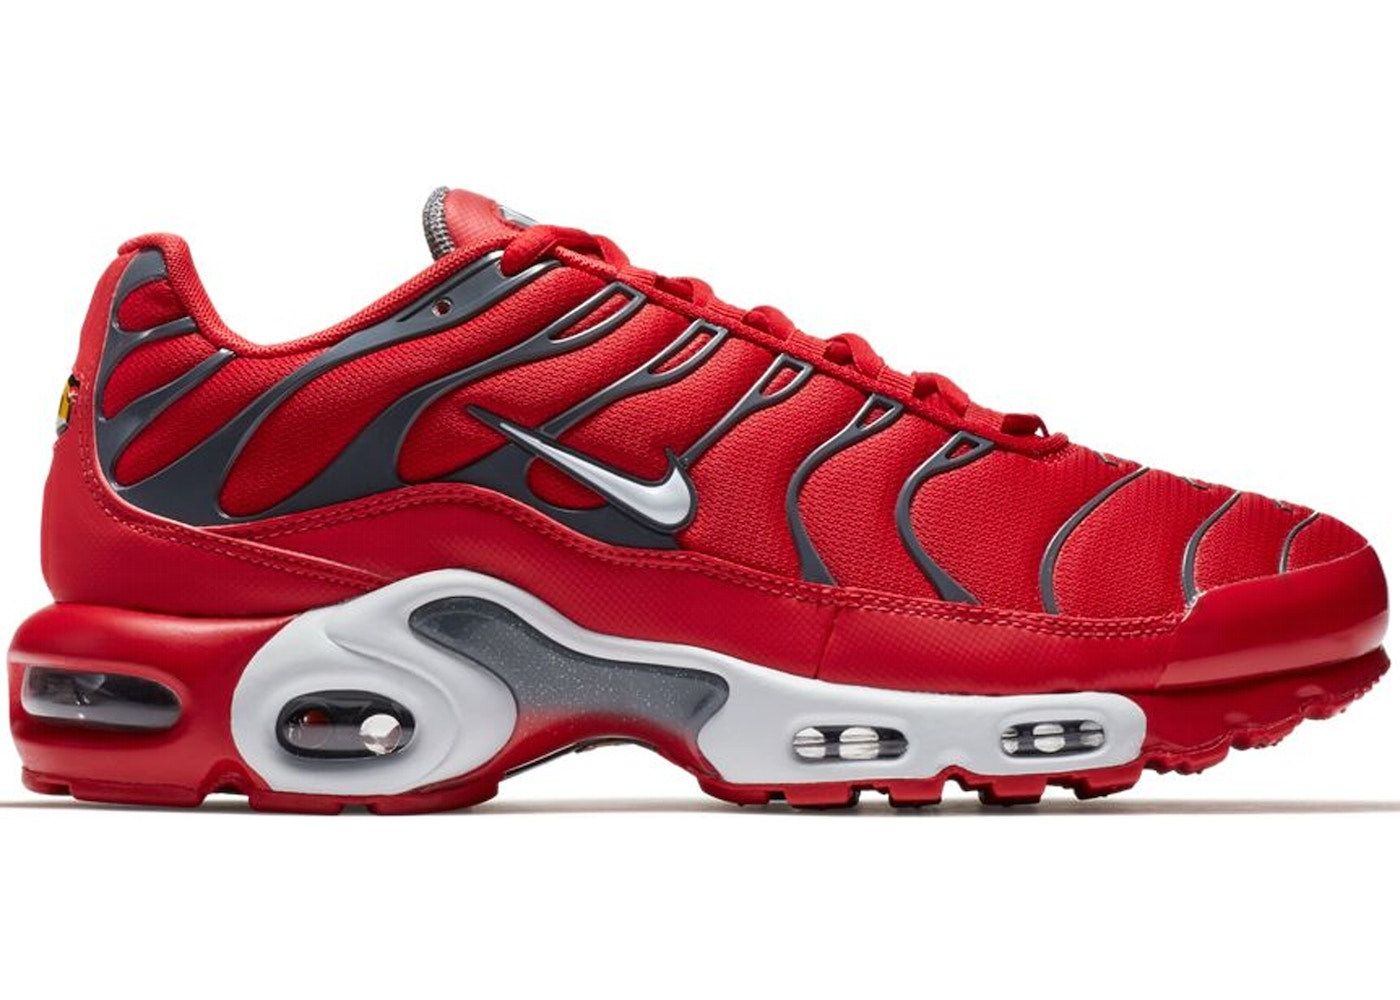 sports shoes fd6bf 6b3c3 Buy Nike Air Max Plus Shoes & Deadstock Sneakers